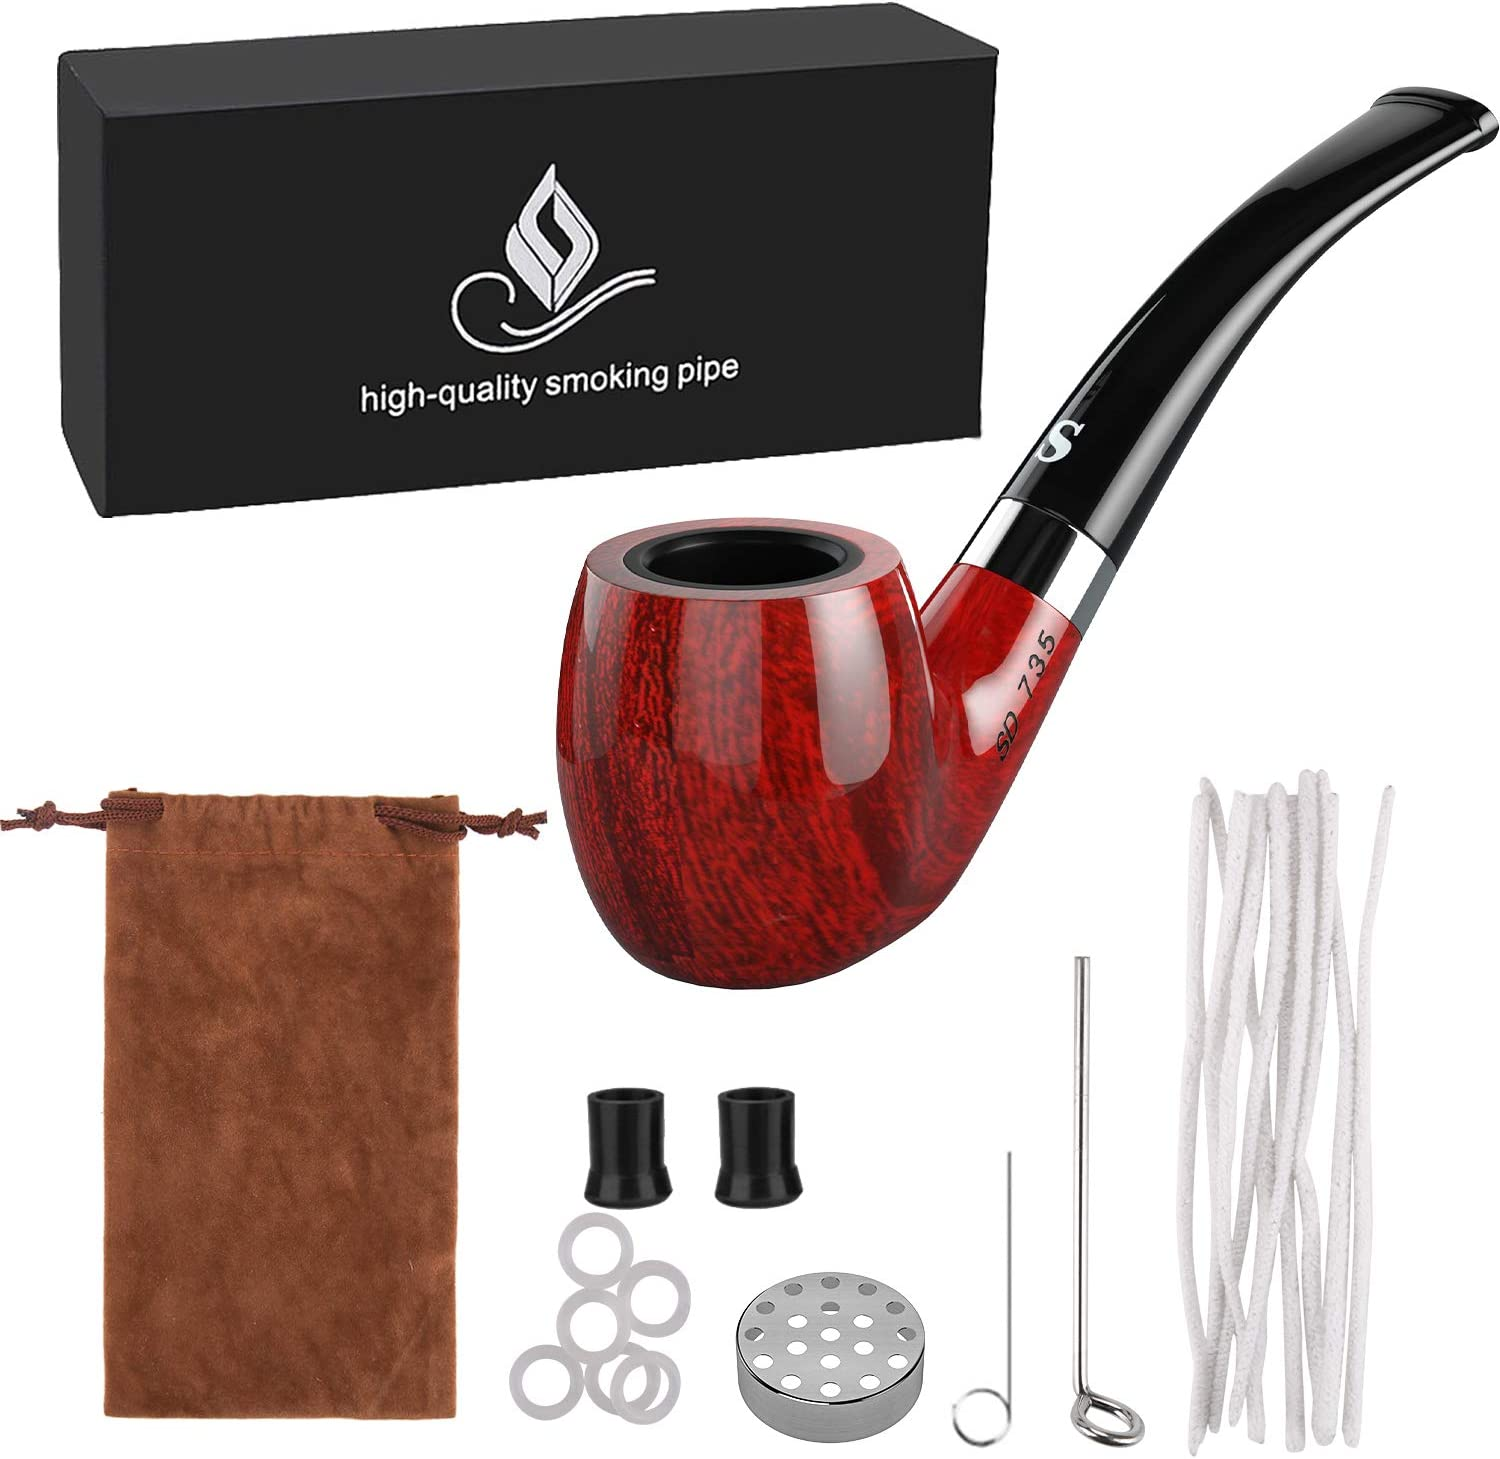 Joyoldelf Tobacco Pipe, Smoking Pipe with Flat Bottom - Pipe Pin & Tamper, Pipe Screen & Pipe Bits, Pipe Cleaners & Rubber Ring, Bonus a Pipe Pouch & Gift Box